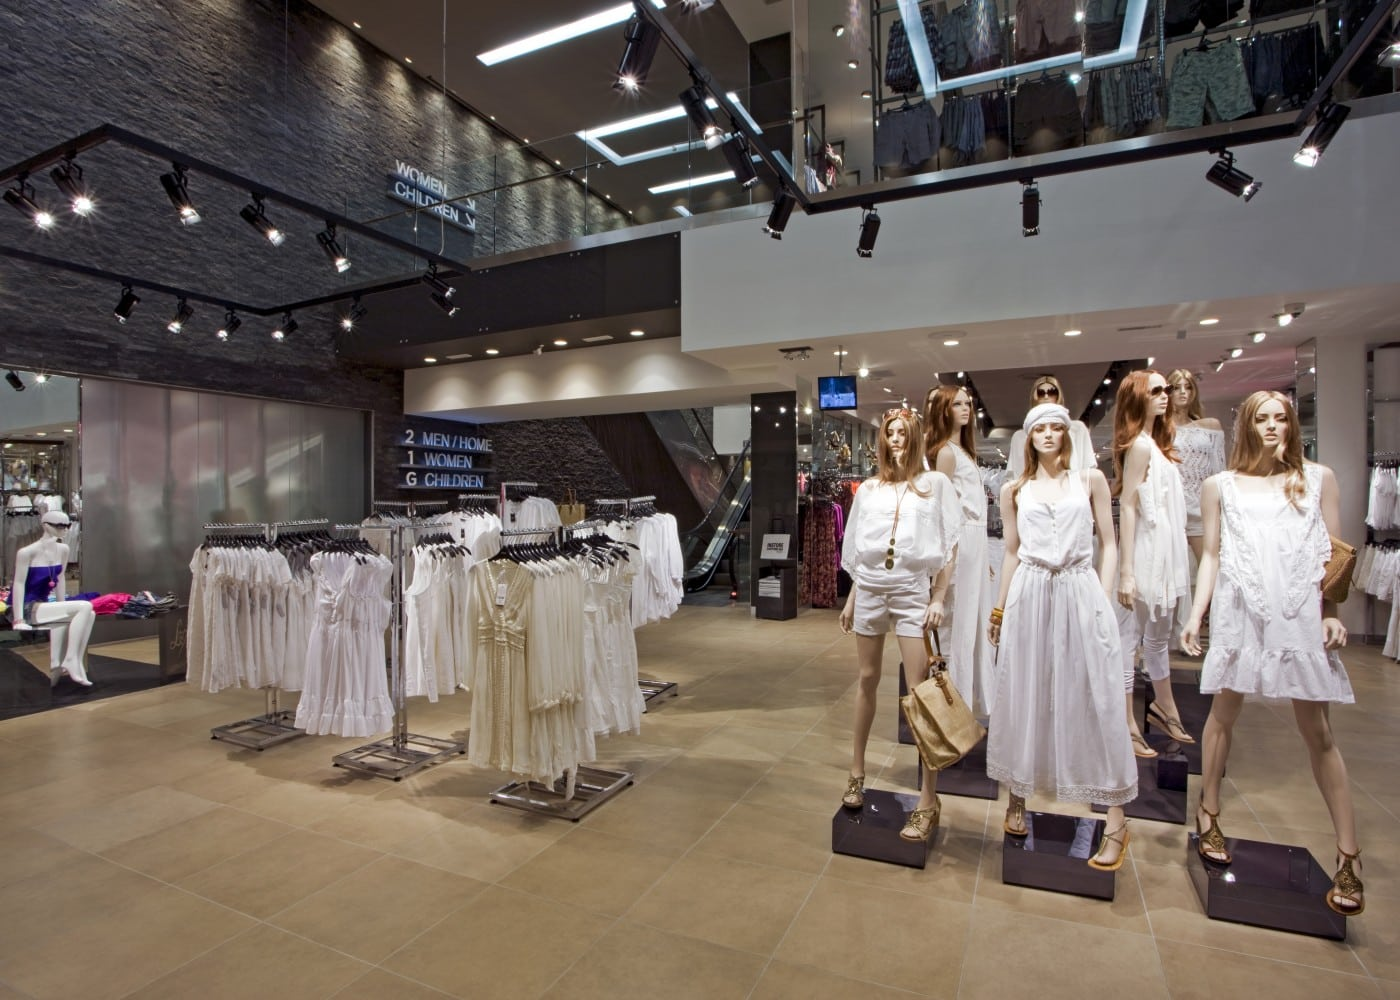 retail lighting design: Next womenswear section